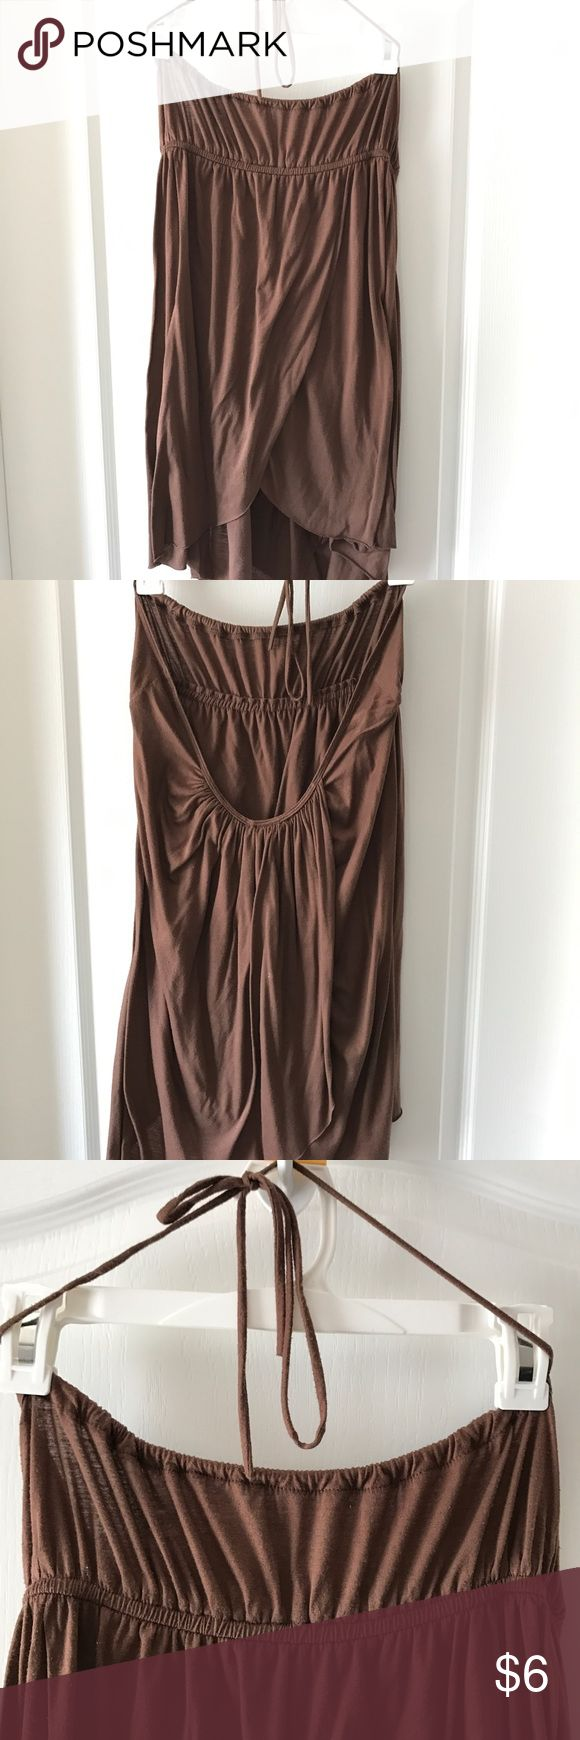 Halter style top Halter style top with low cut back, ties at neck. Versitile. Can be worn with a tank top underneath, over a bikini OR with a strapless bra. Brown; Soft cotton blend material. Forever 21 Tops Tank Tops